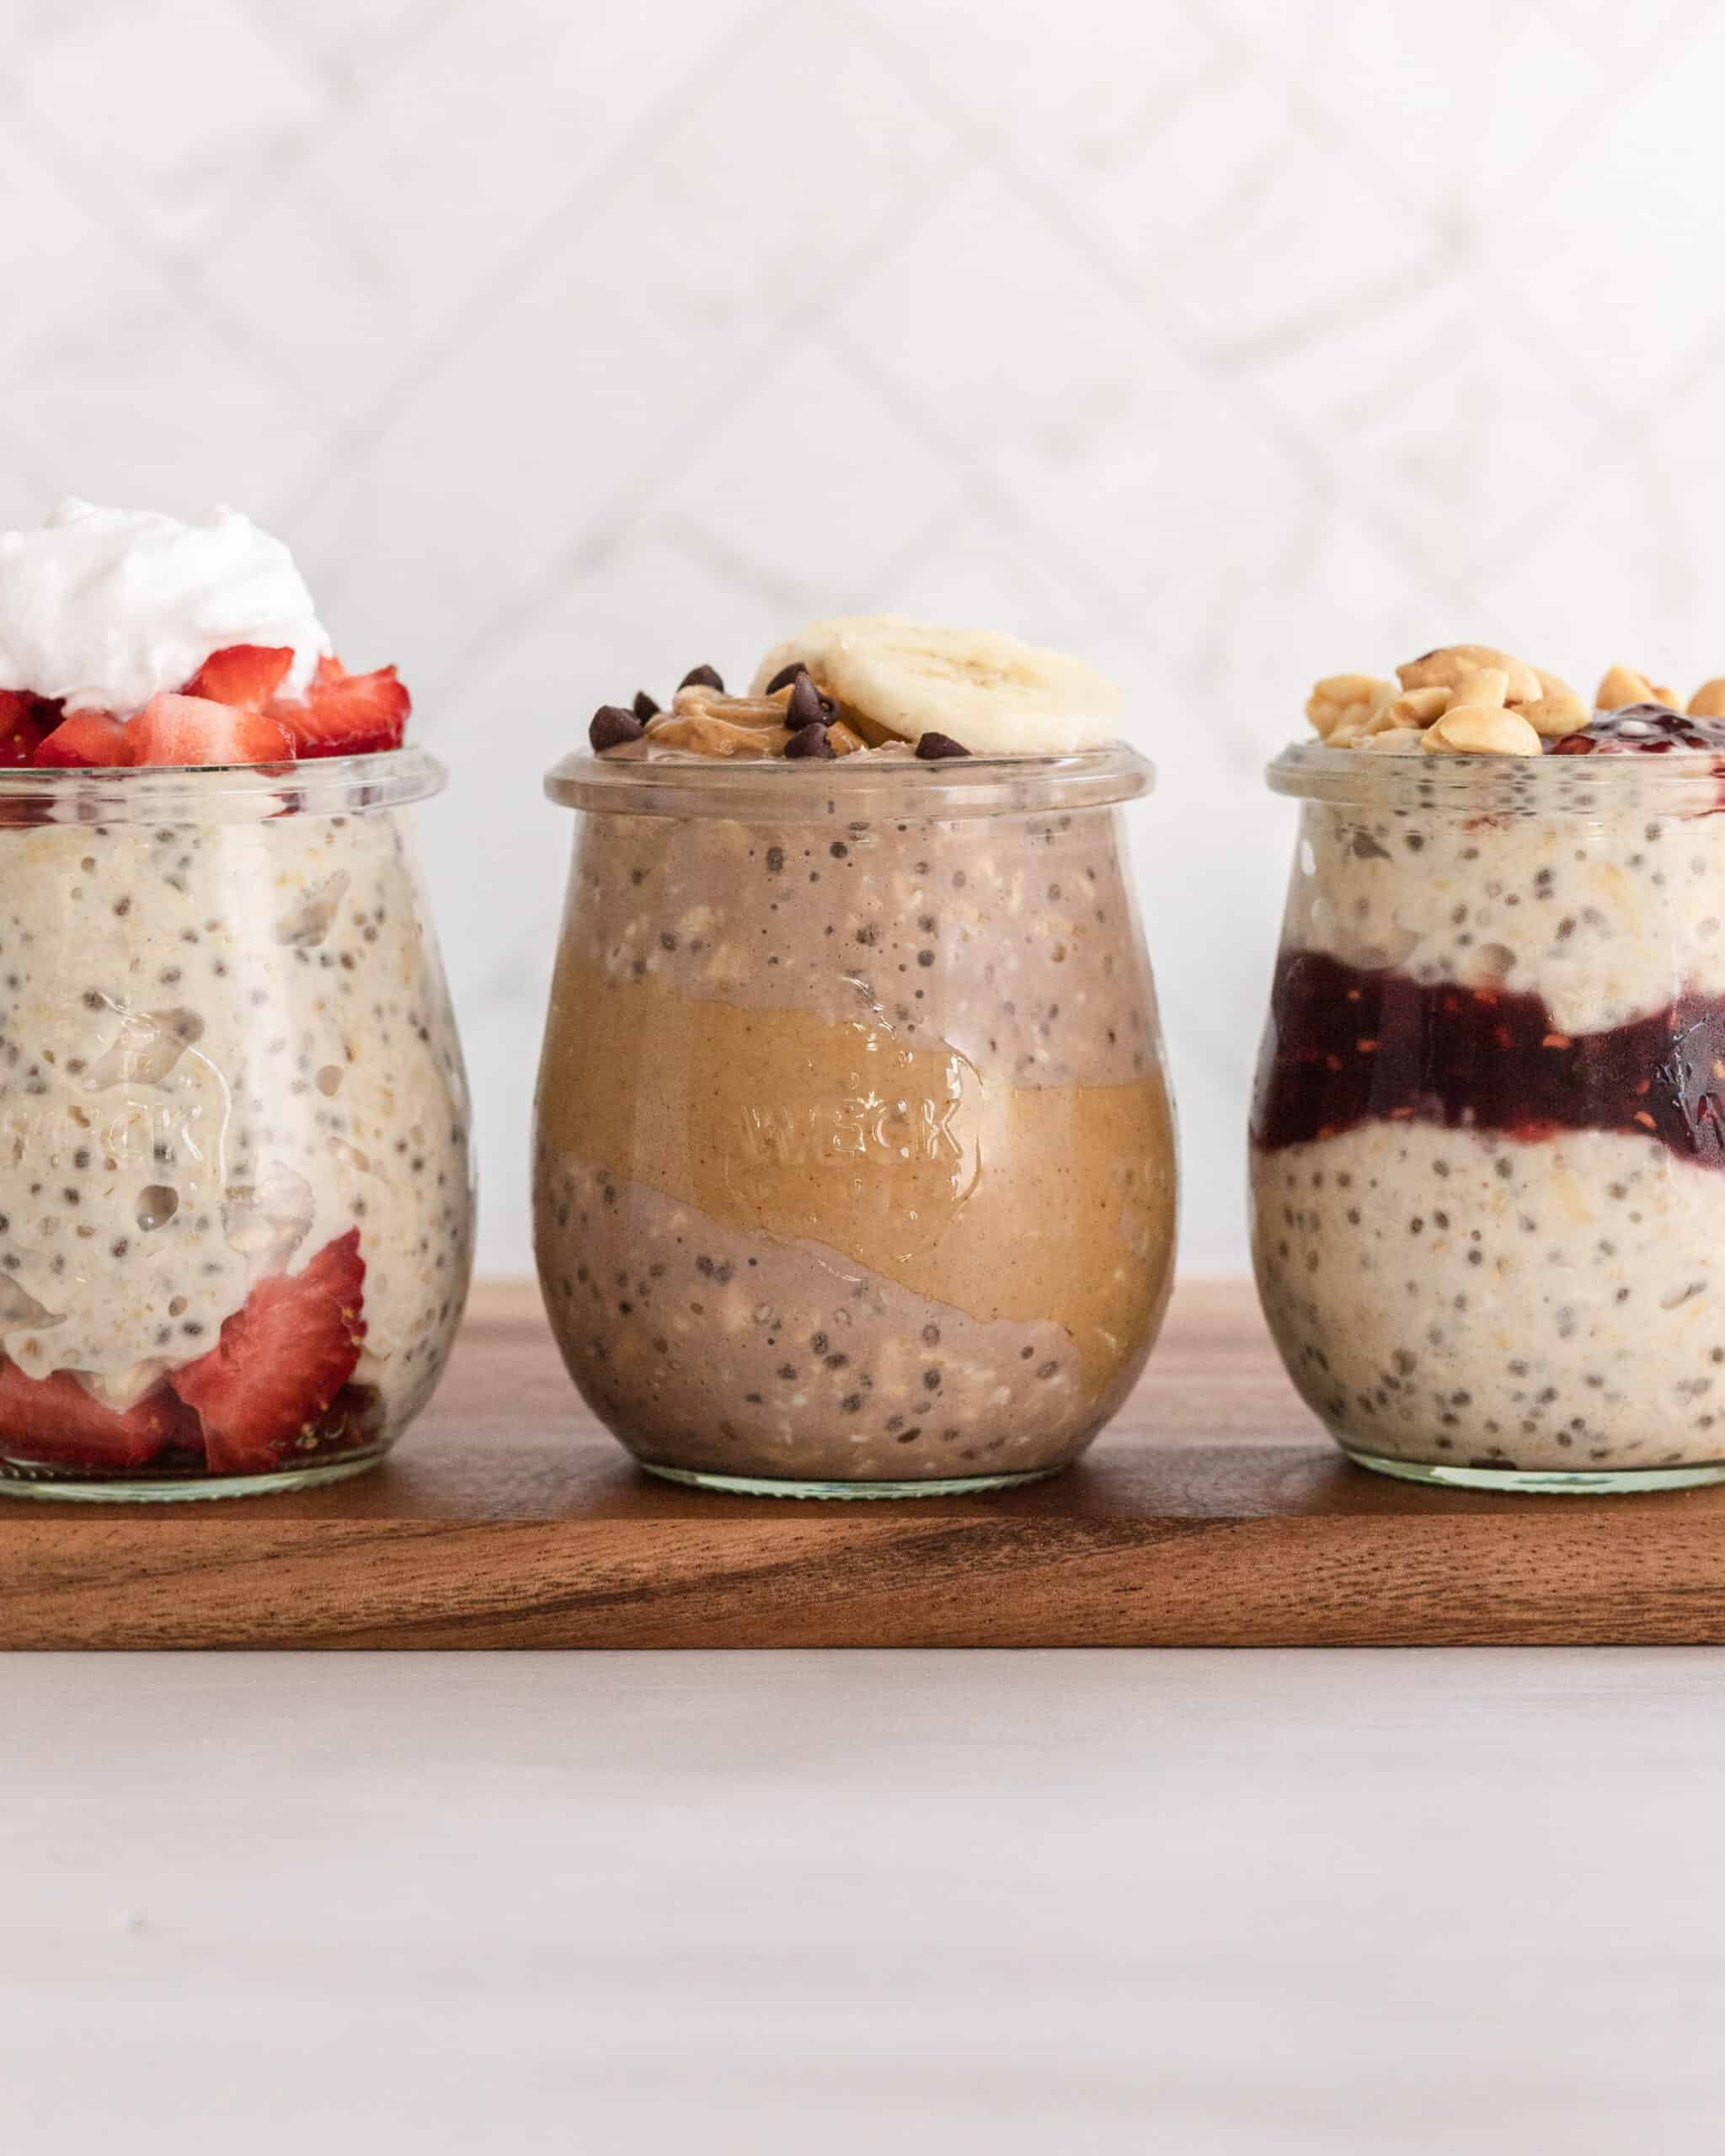 3 high-protein overnight oats variations in clear jars on a wooden board.